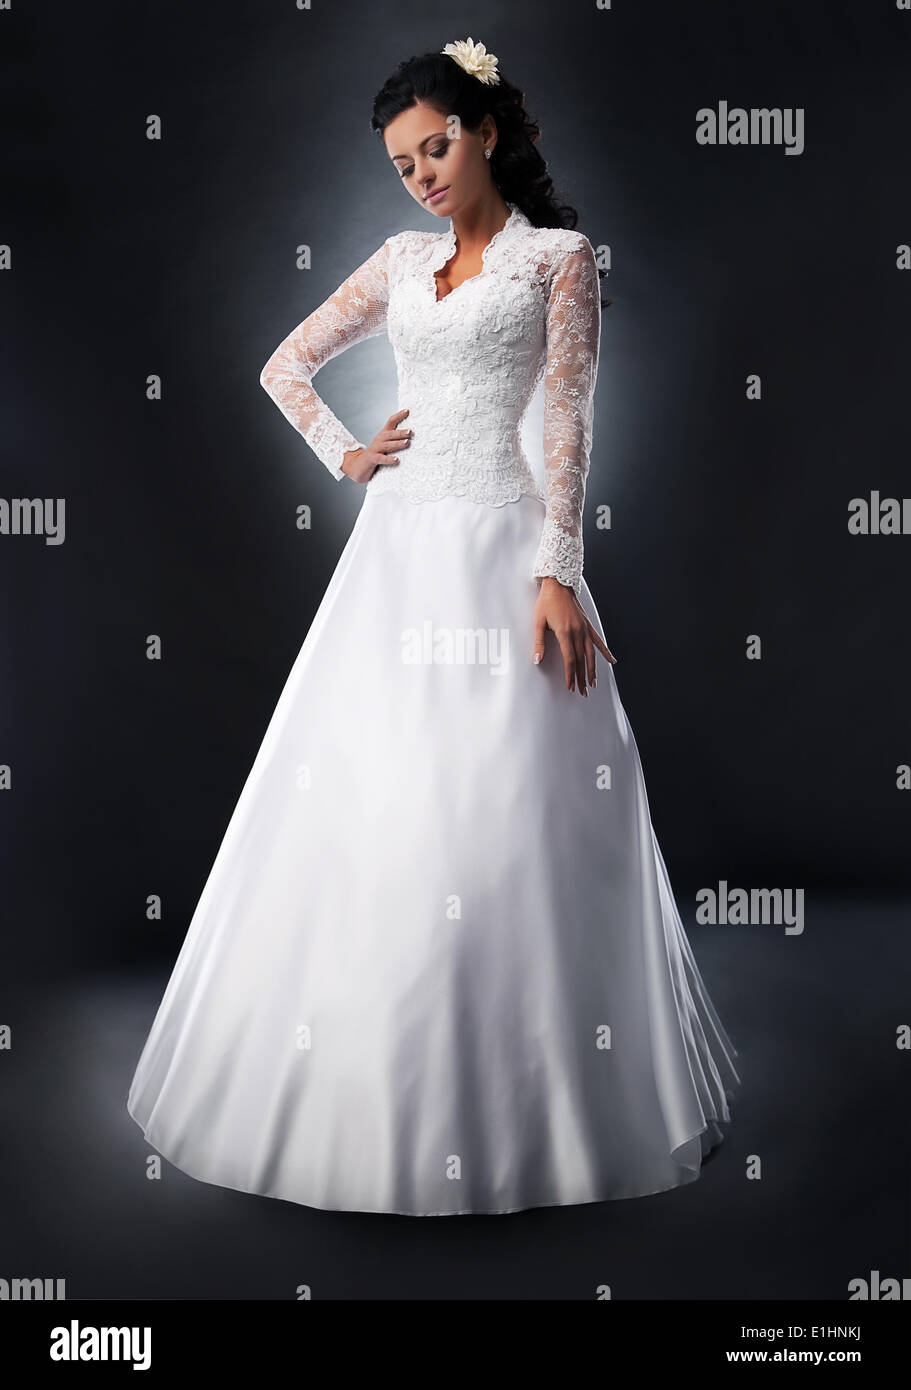 Pretty young woman in white wedding dress with flower in her head - series of photos - Stock Image